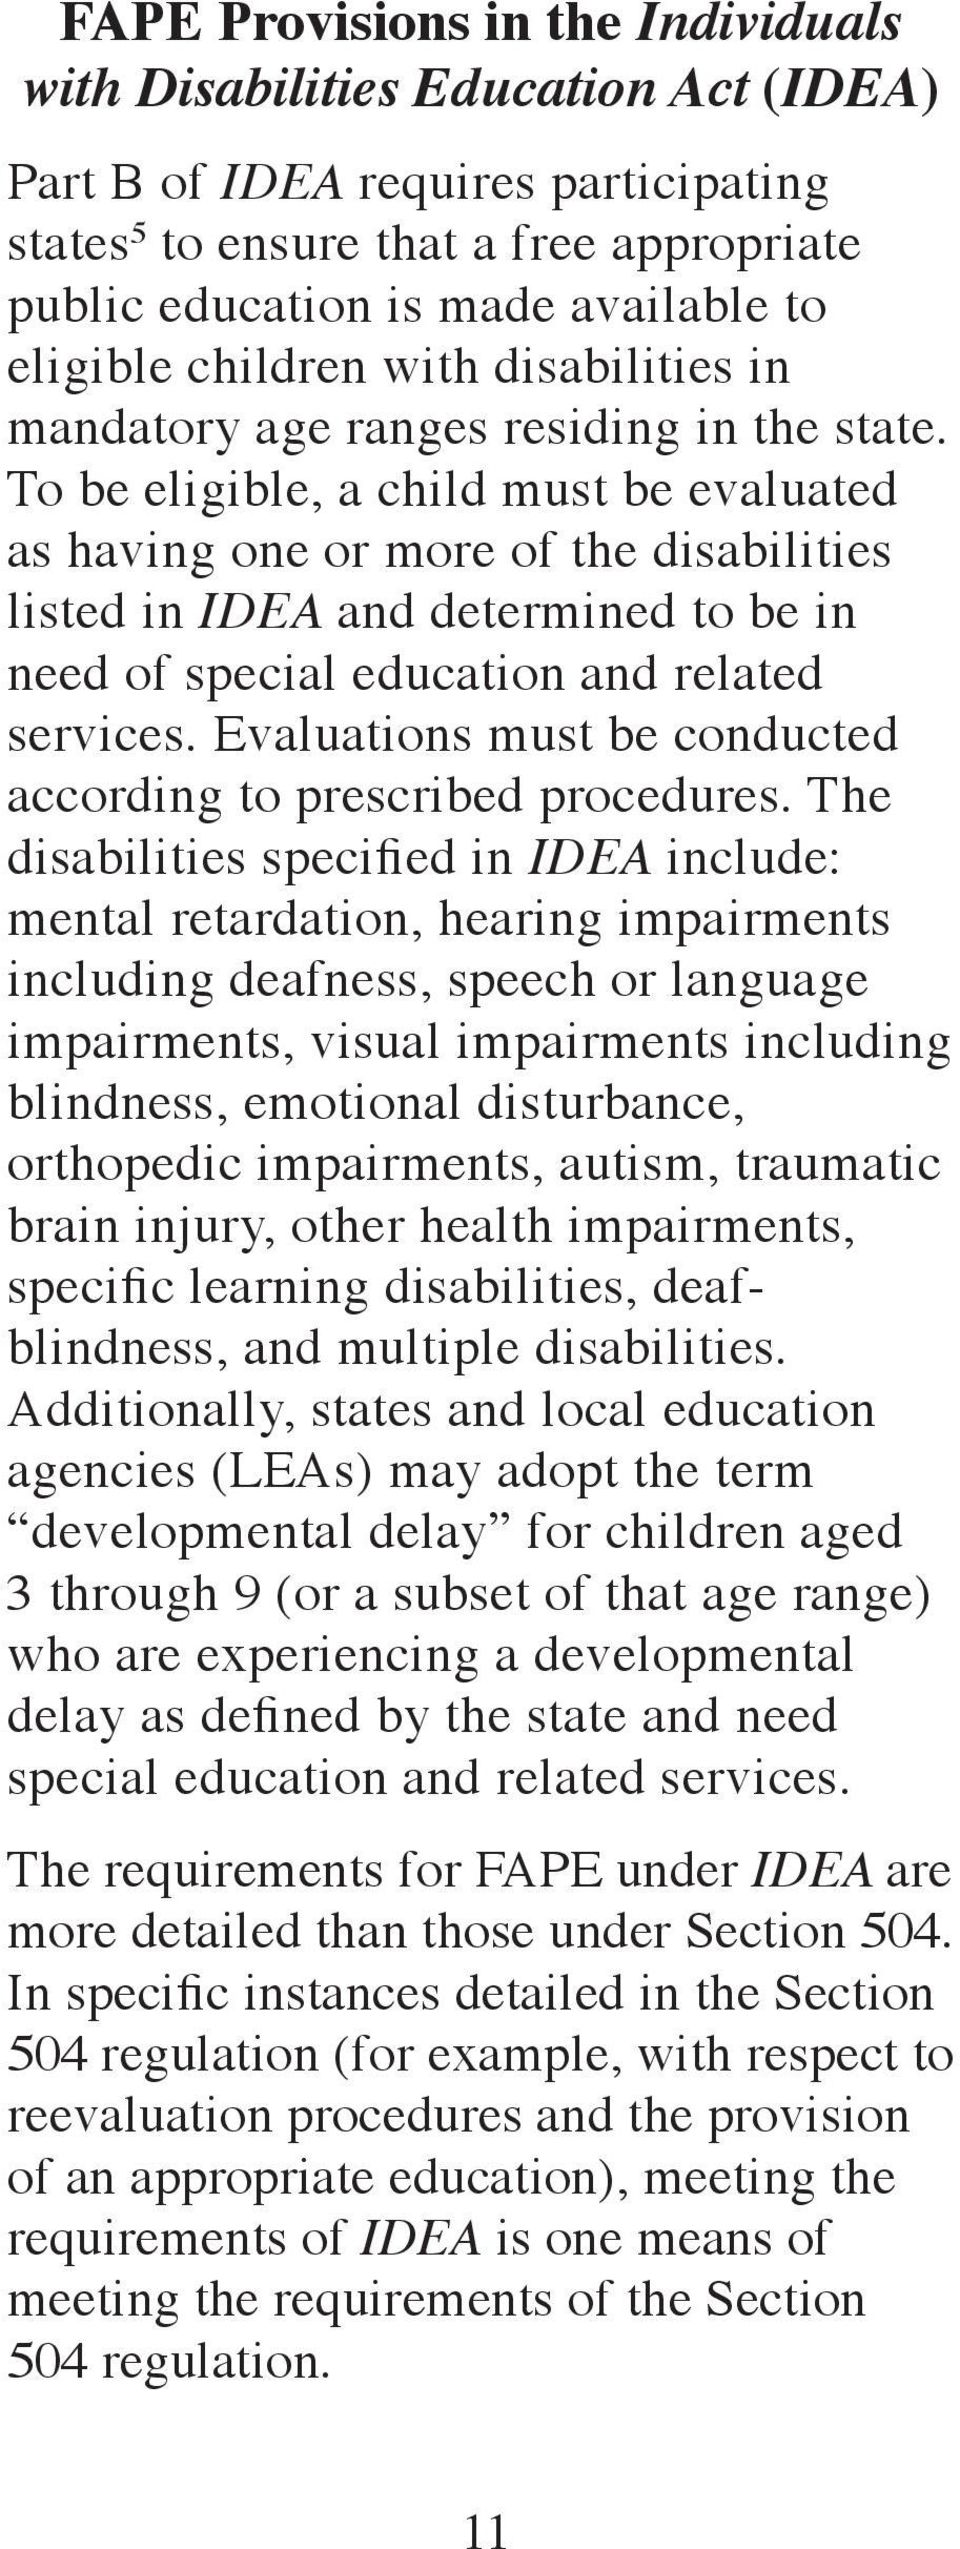 To be eligible, a child must be evaluated as having one or more of the disabilities listed in IDEA and determined to be in need of special education and related services.